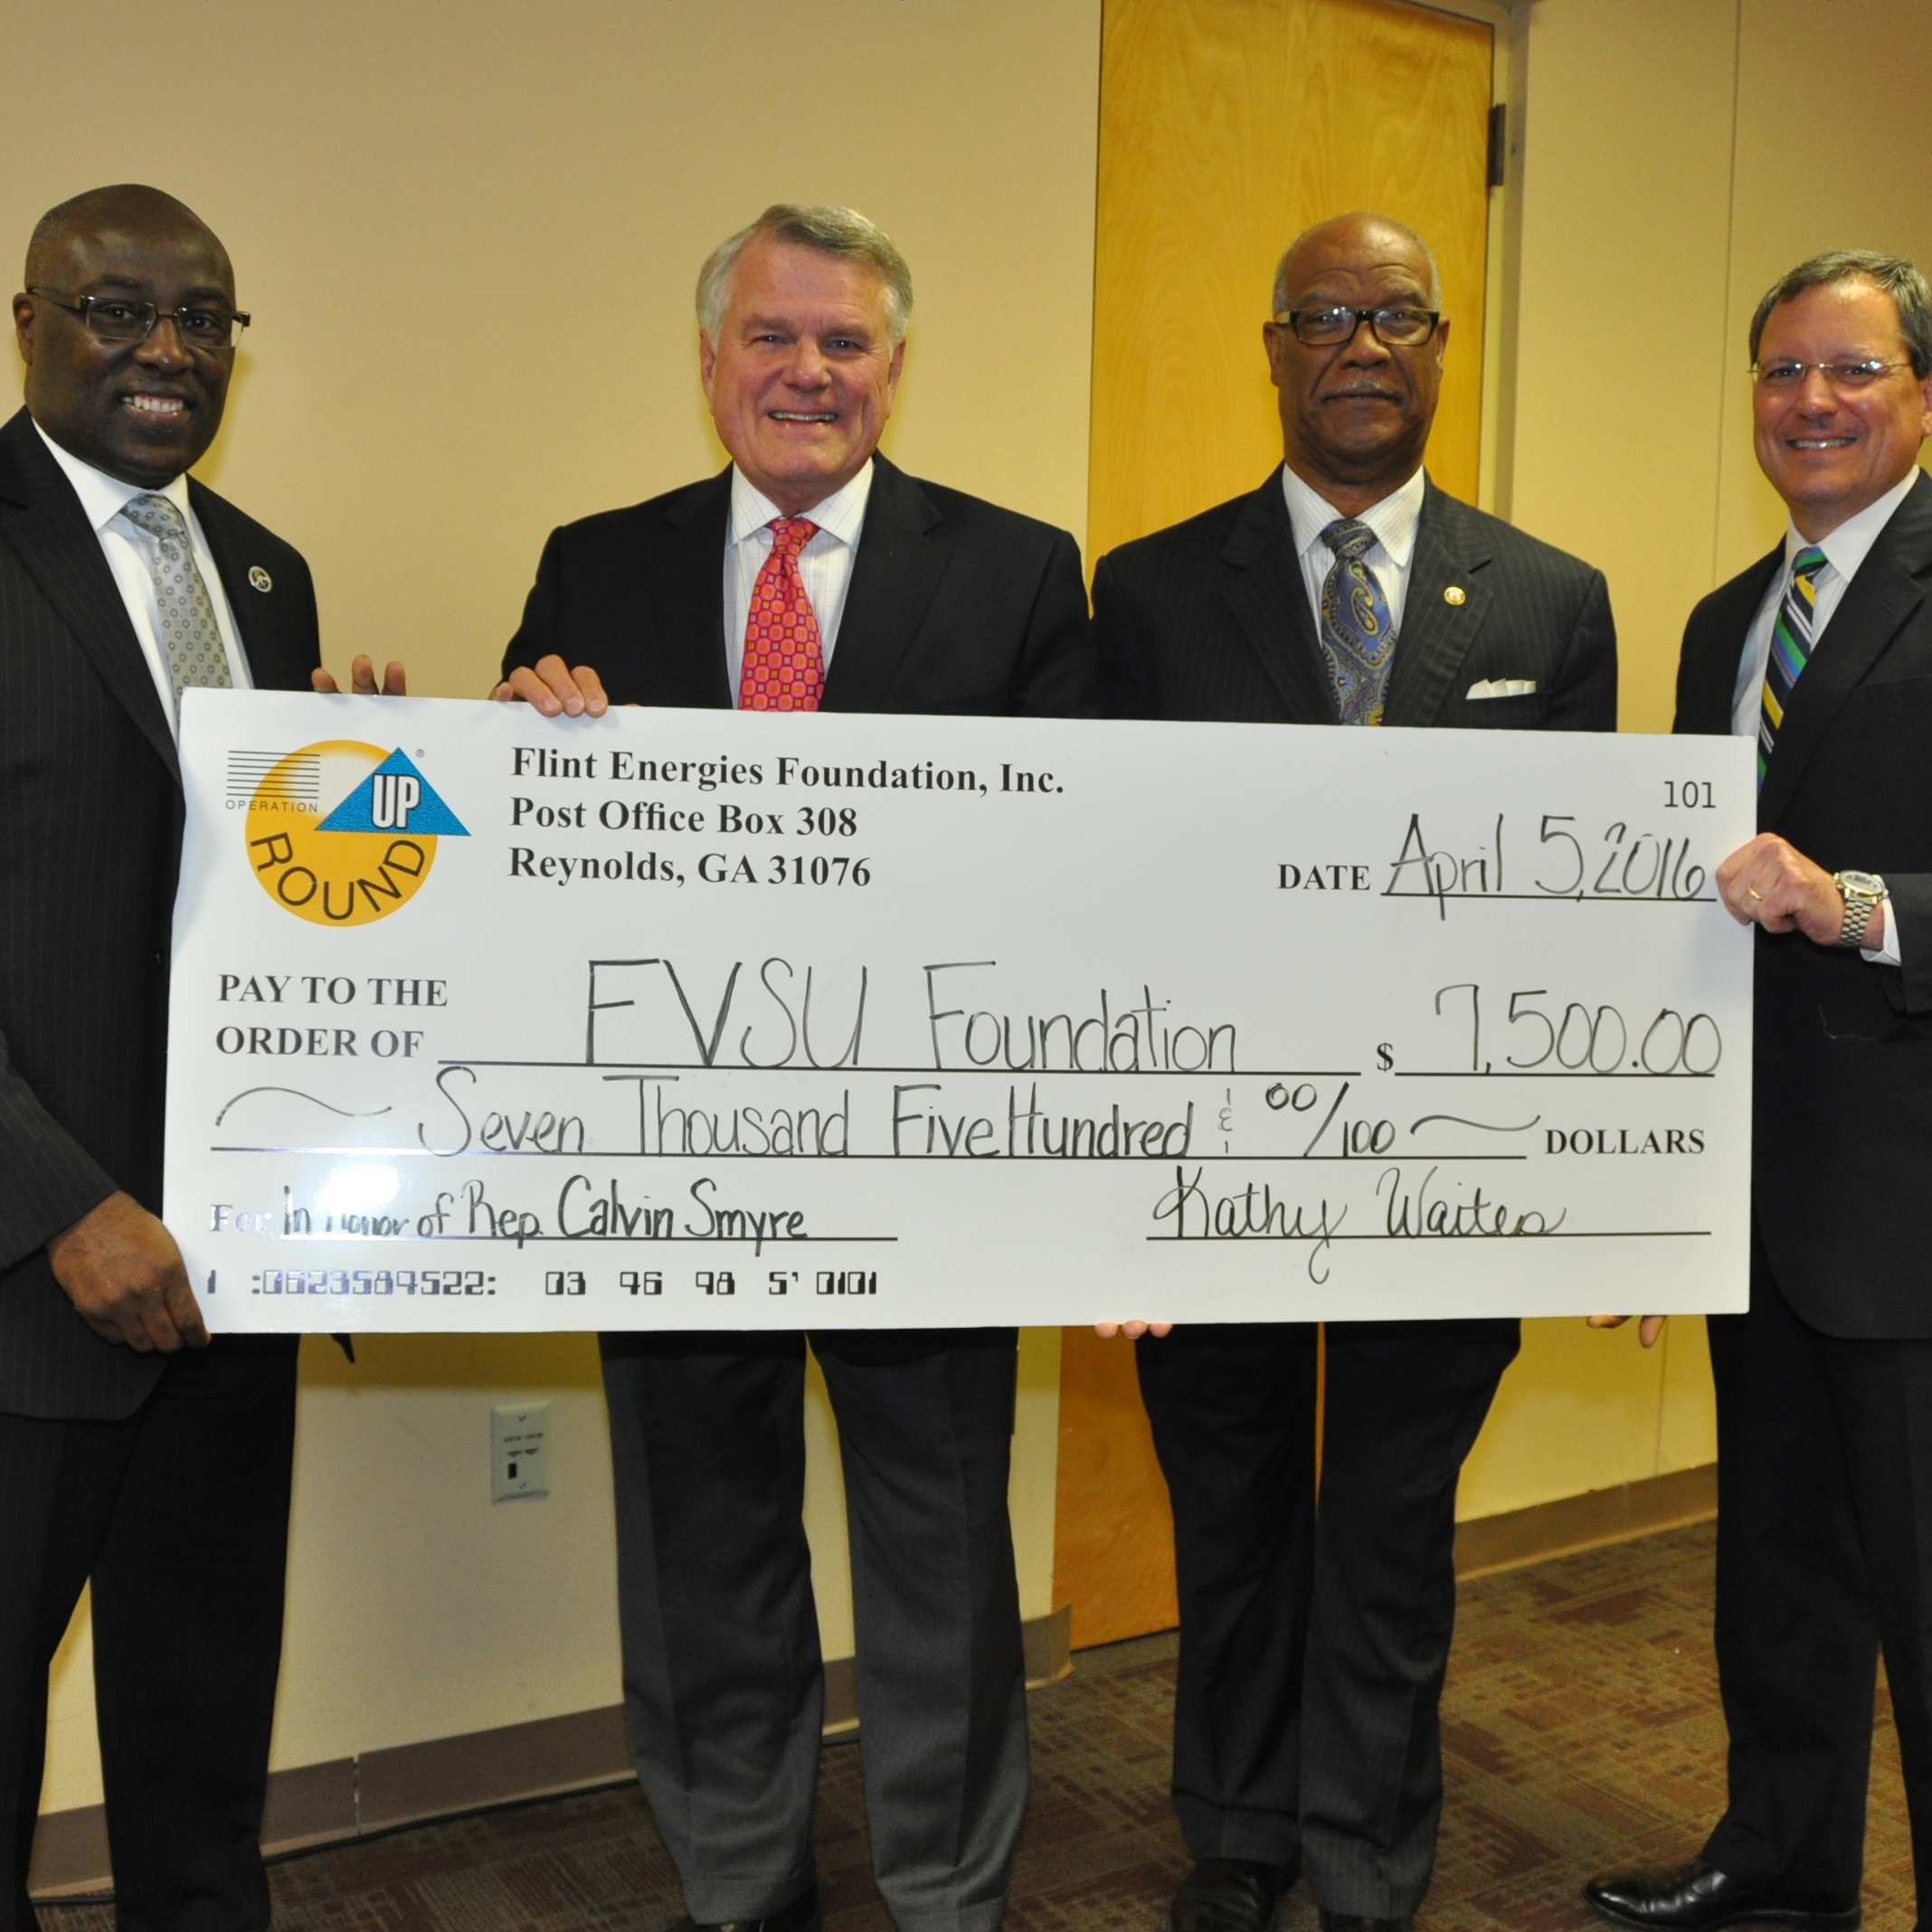 Flint Energies Foundation gives a check to the FVSU Foundation of $7,500.